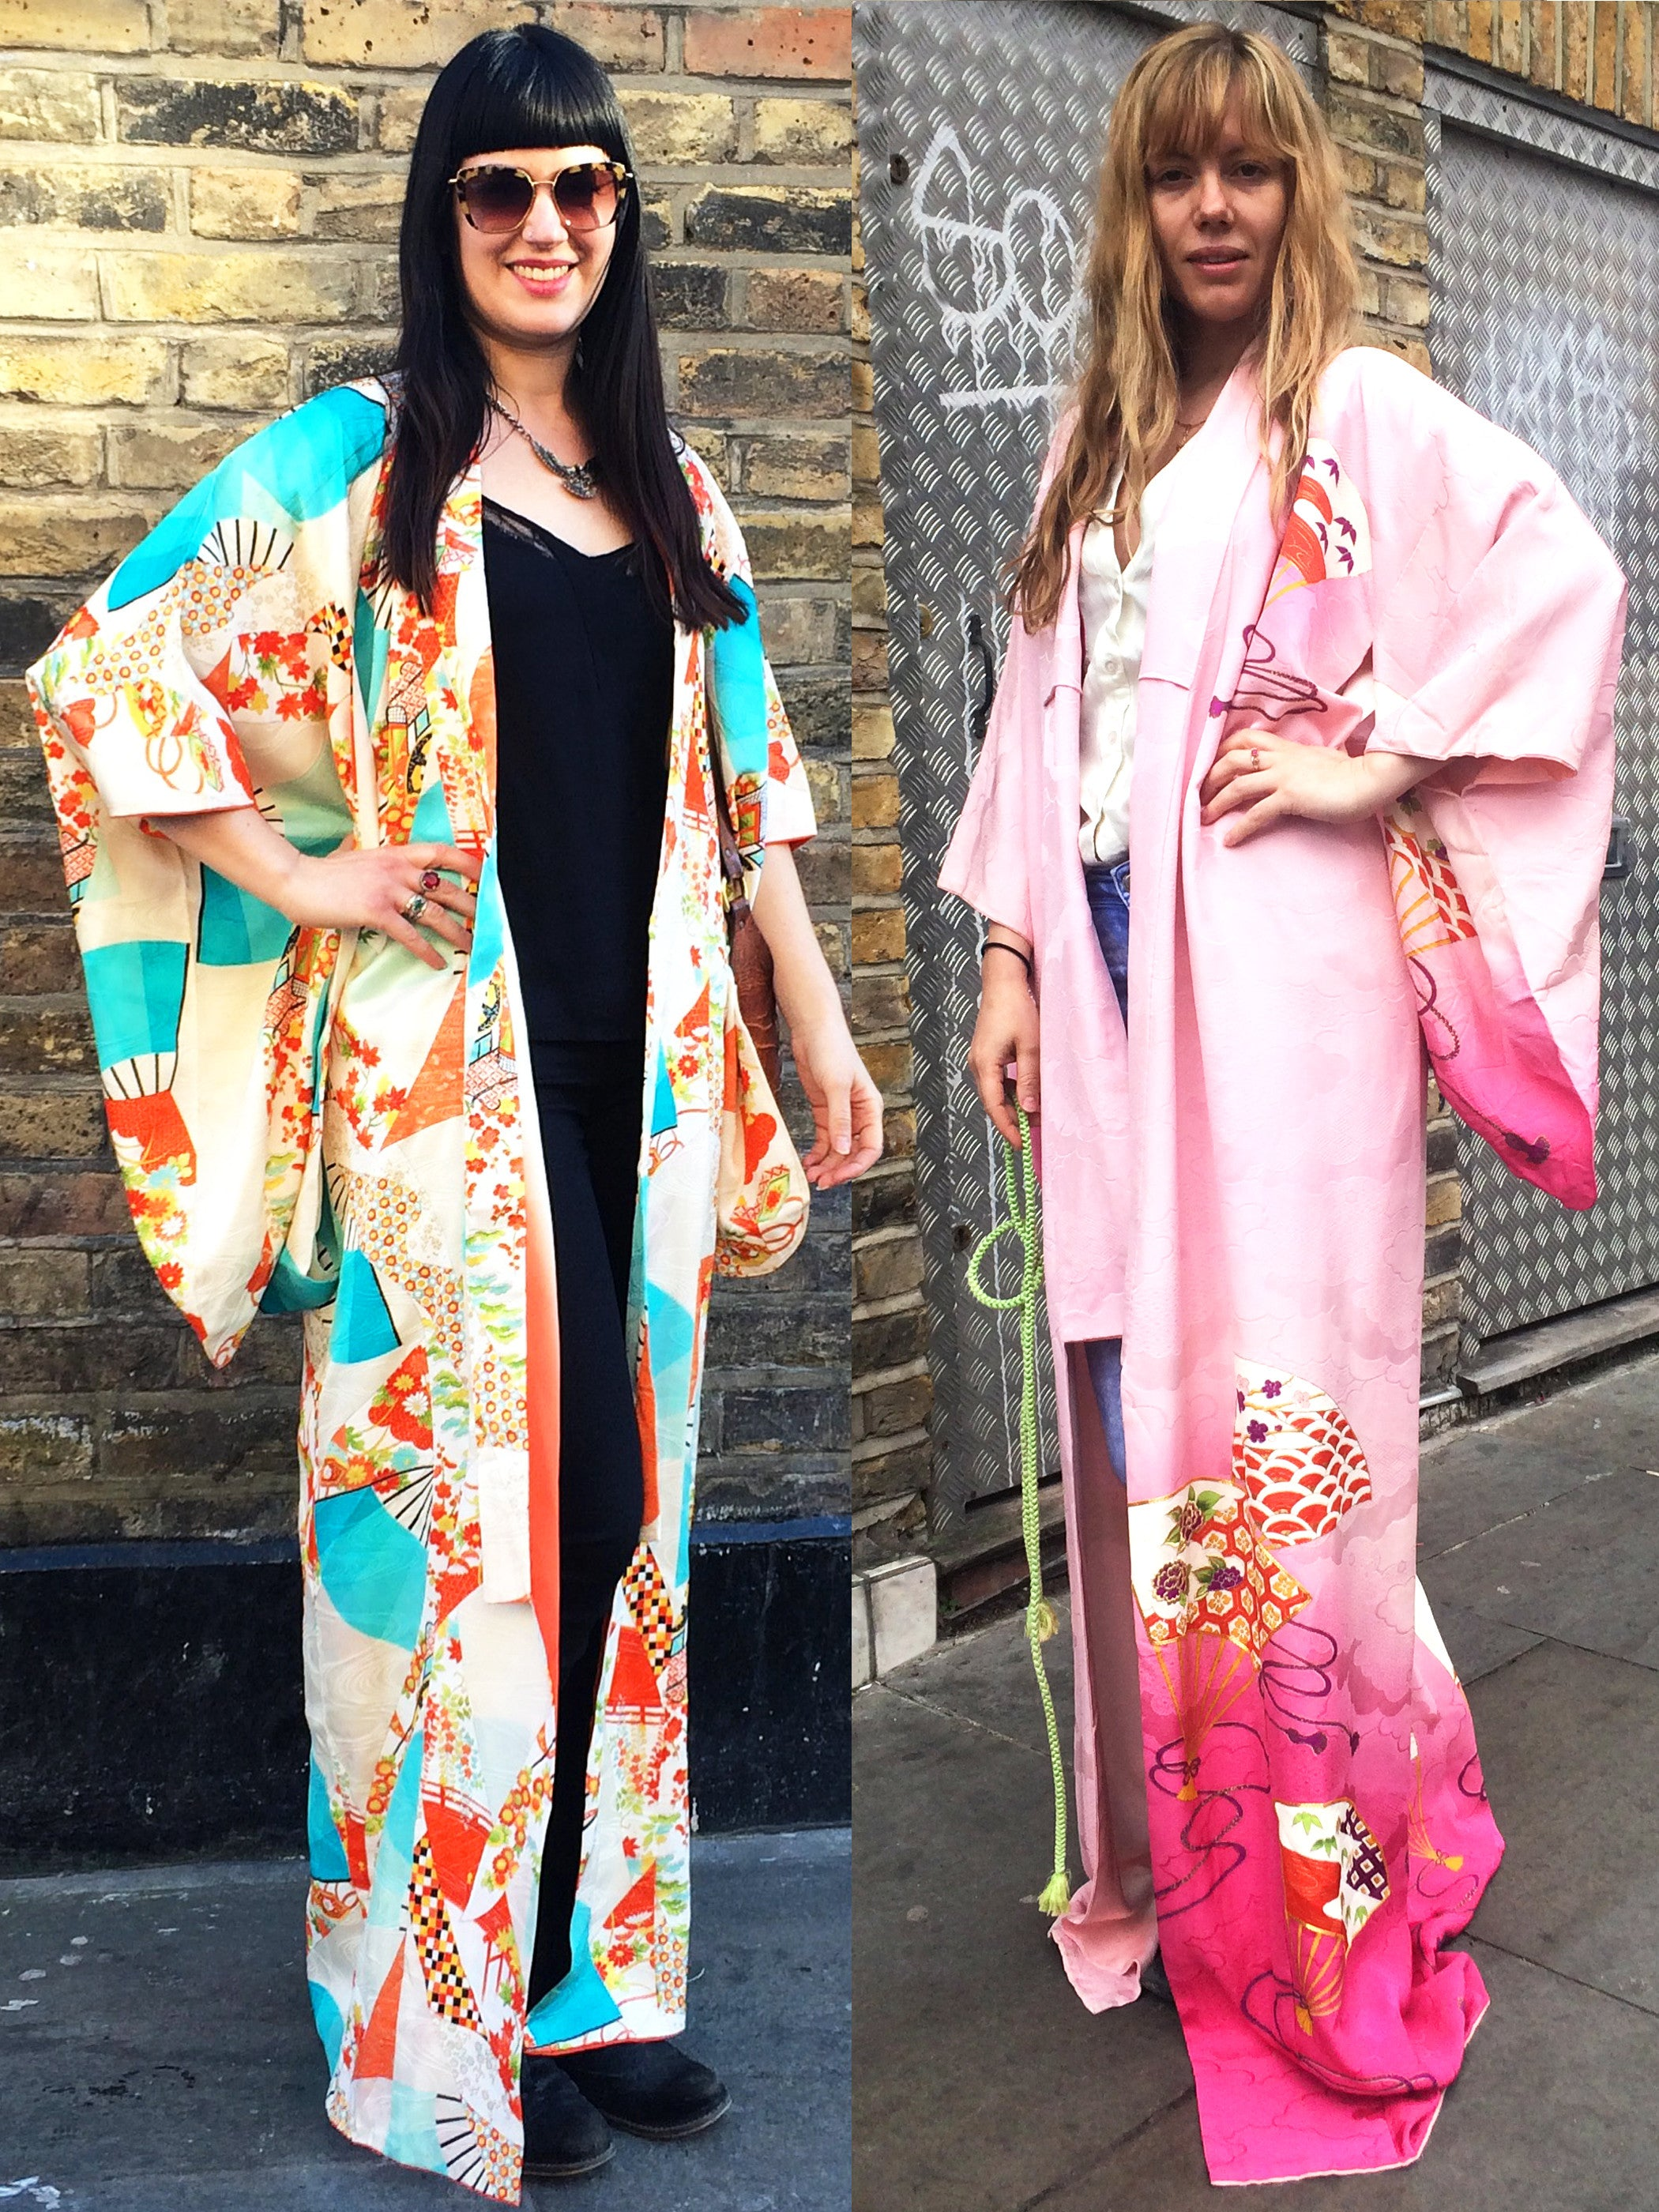 Clare and Tatsiana in their Mero Retro vintage kimonos